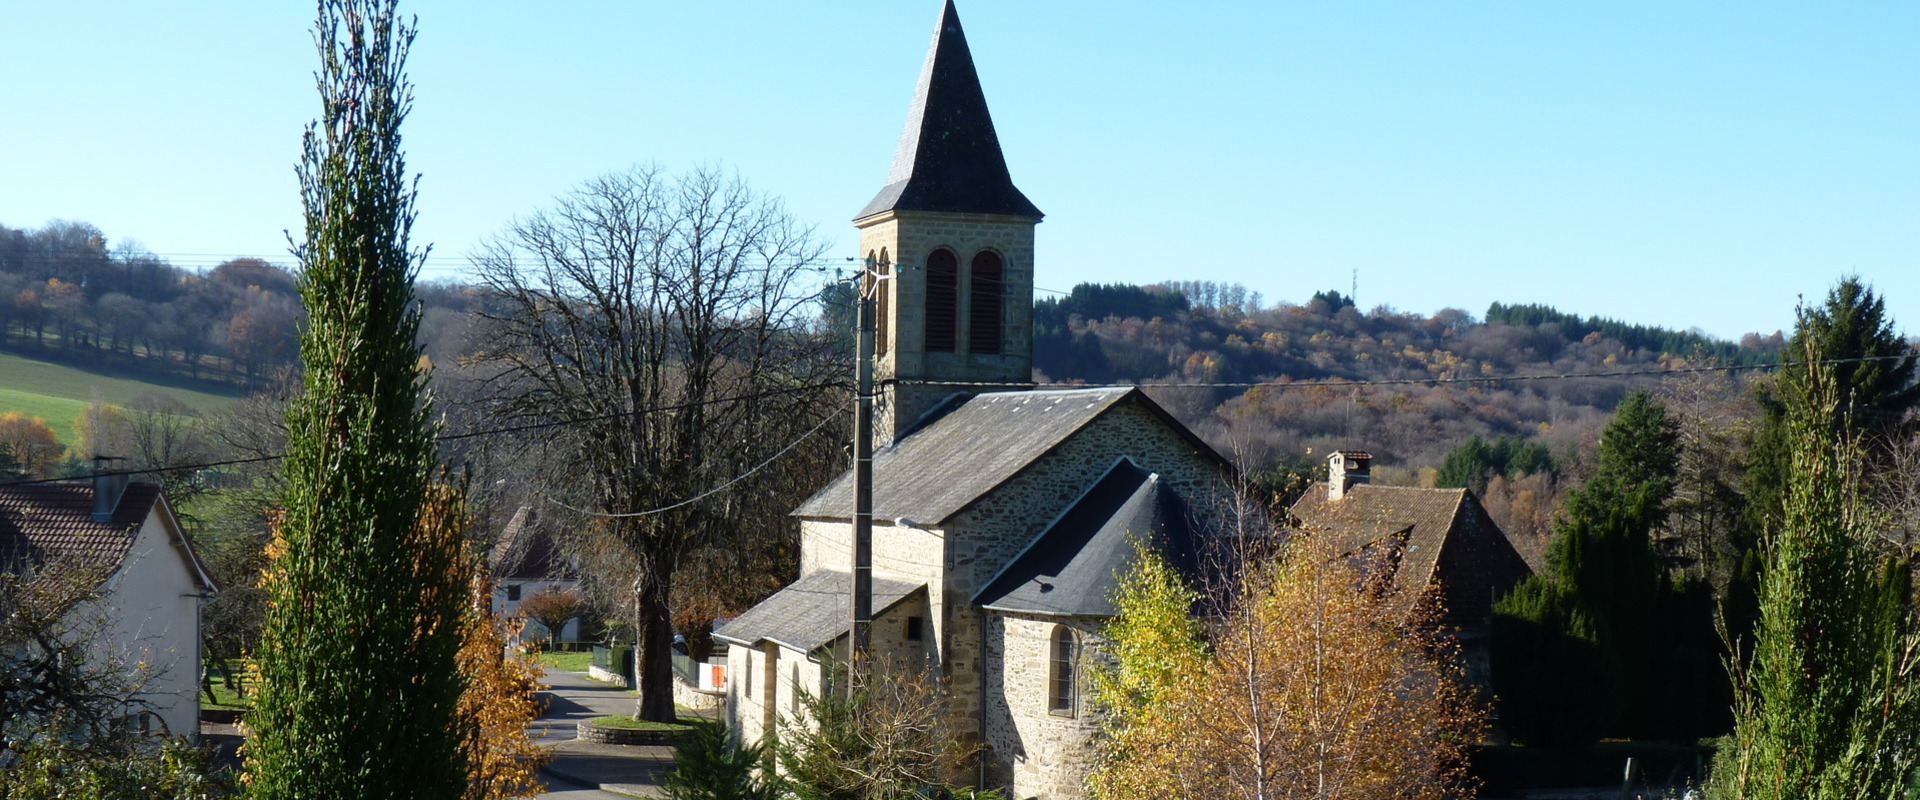 Bannes commune du Lot